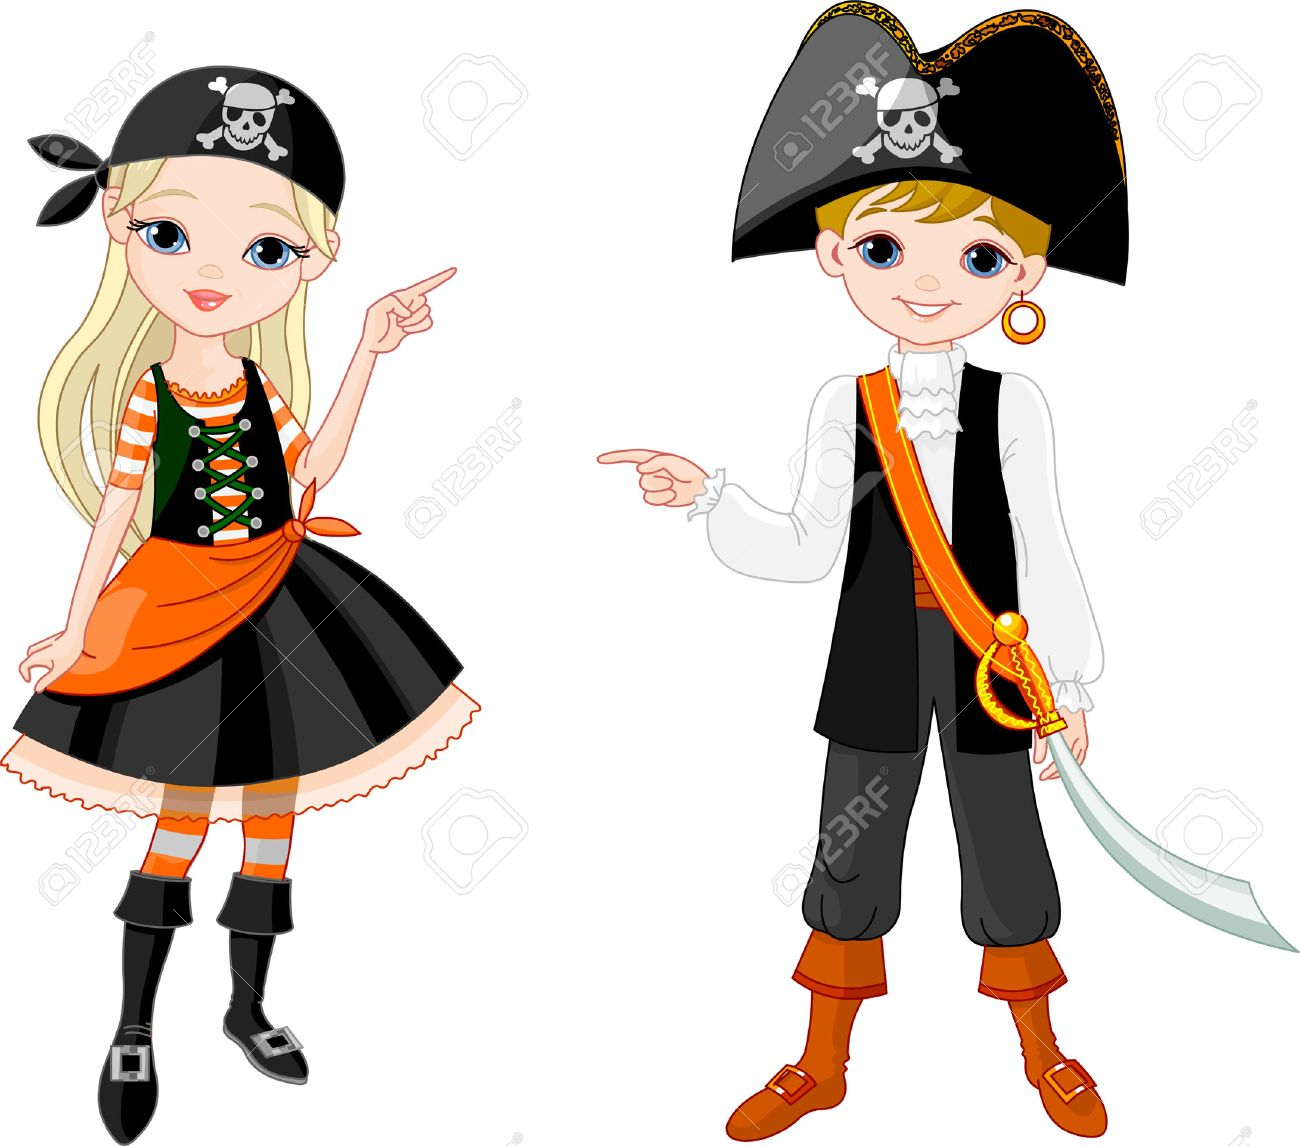 Two Pointing Kids Dressed As Pirates For Halloween Party Royalty ...